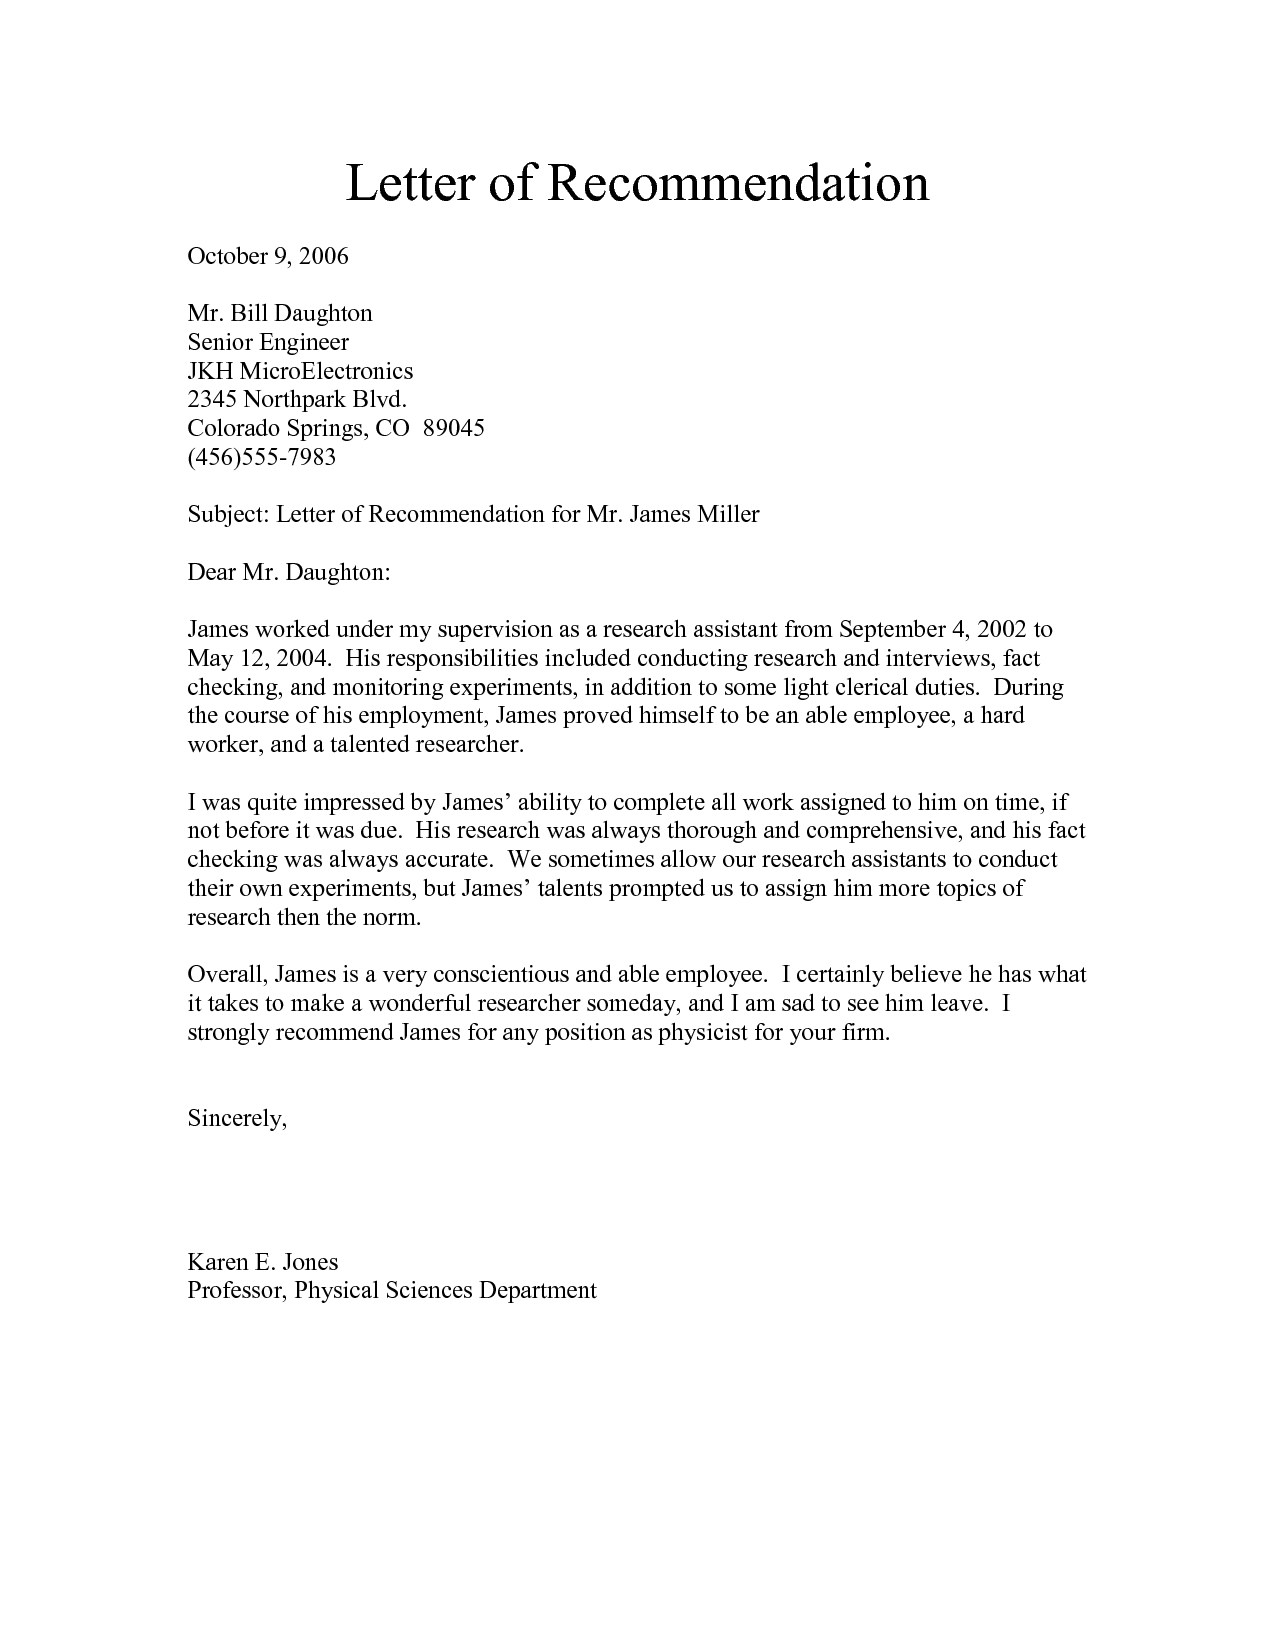 a sample letter of recommendation